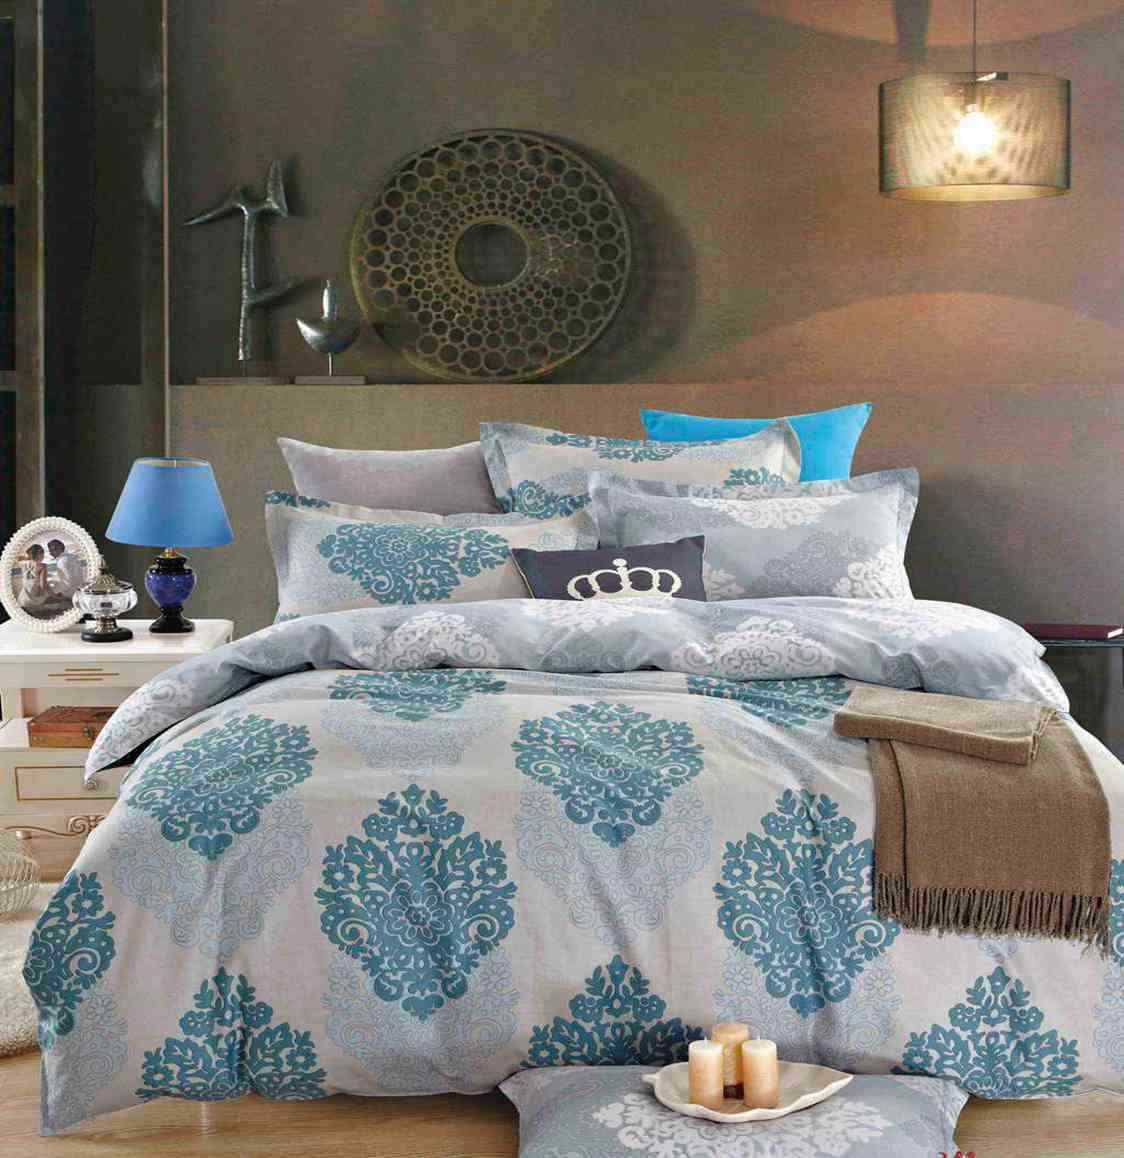 100% Cotton 6 Pieces Duvet cover+Pillow cases+Fitted Sheet Bedding Set 400TC